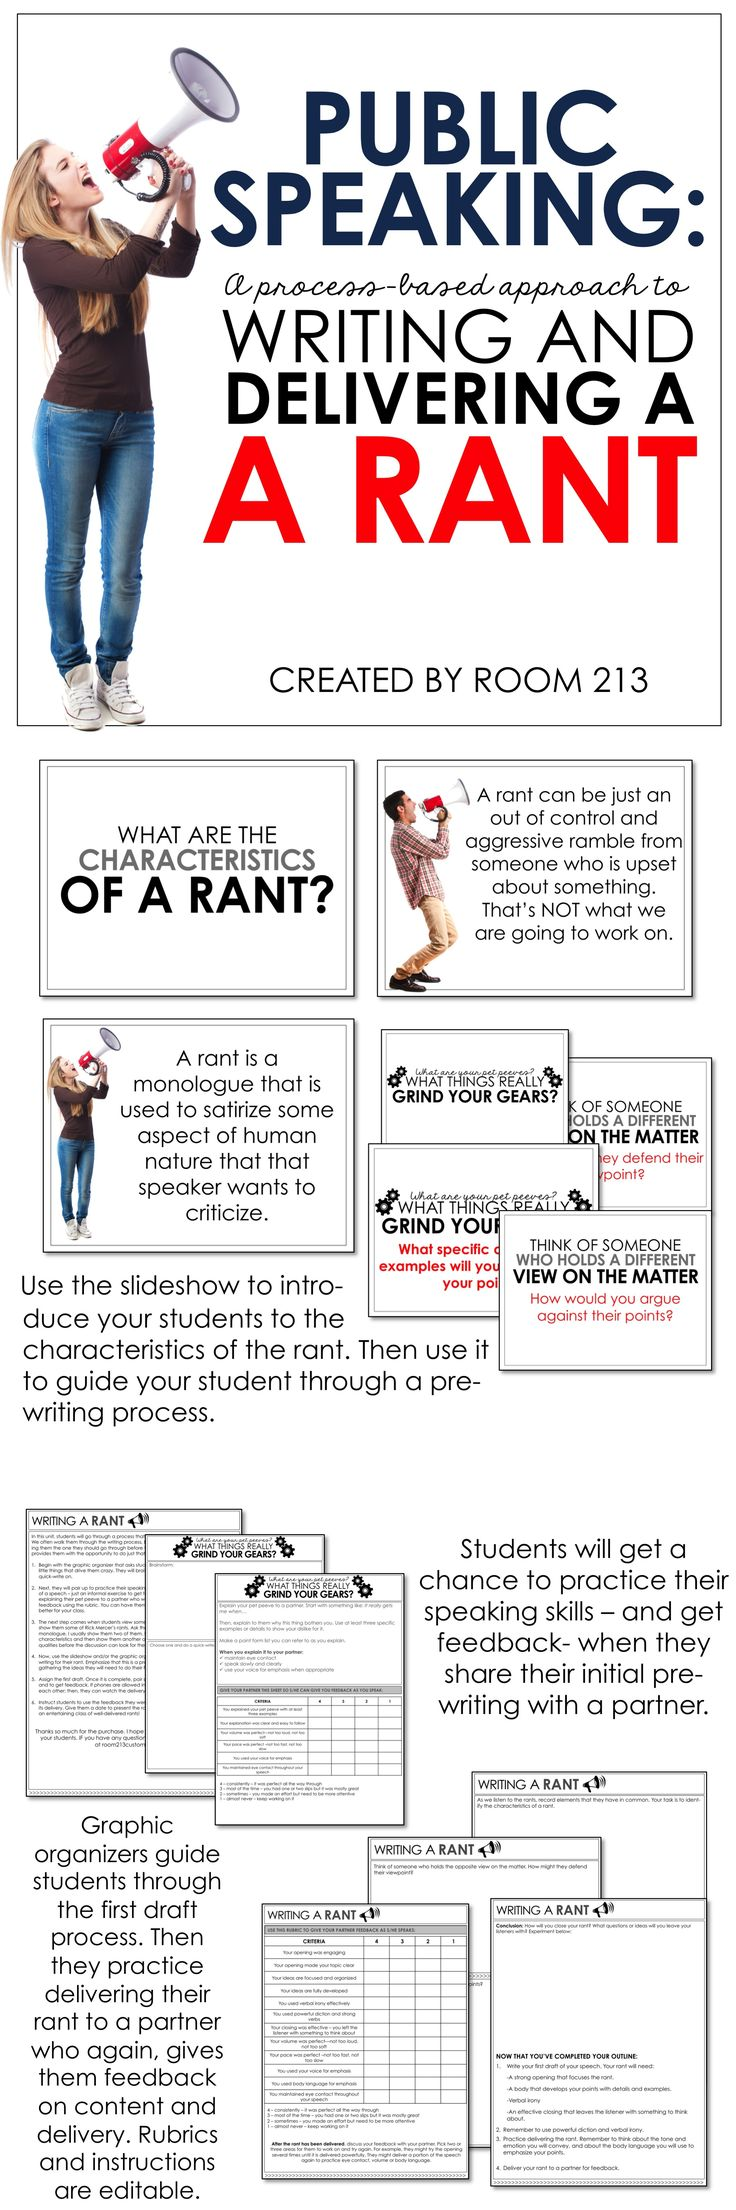 Middle and high school English teachers: use this public speaking activity to engage your students and to teach them the speaking process.